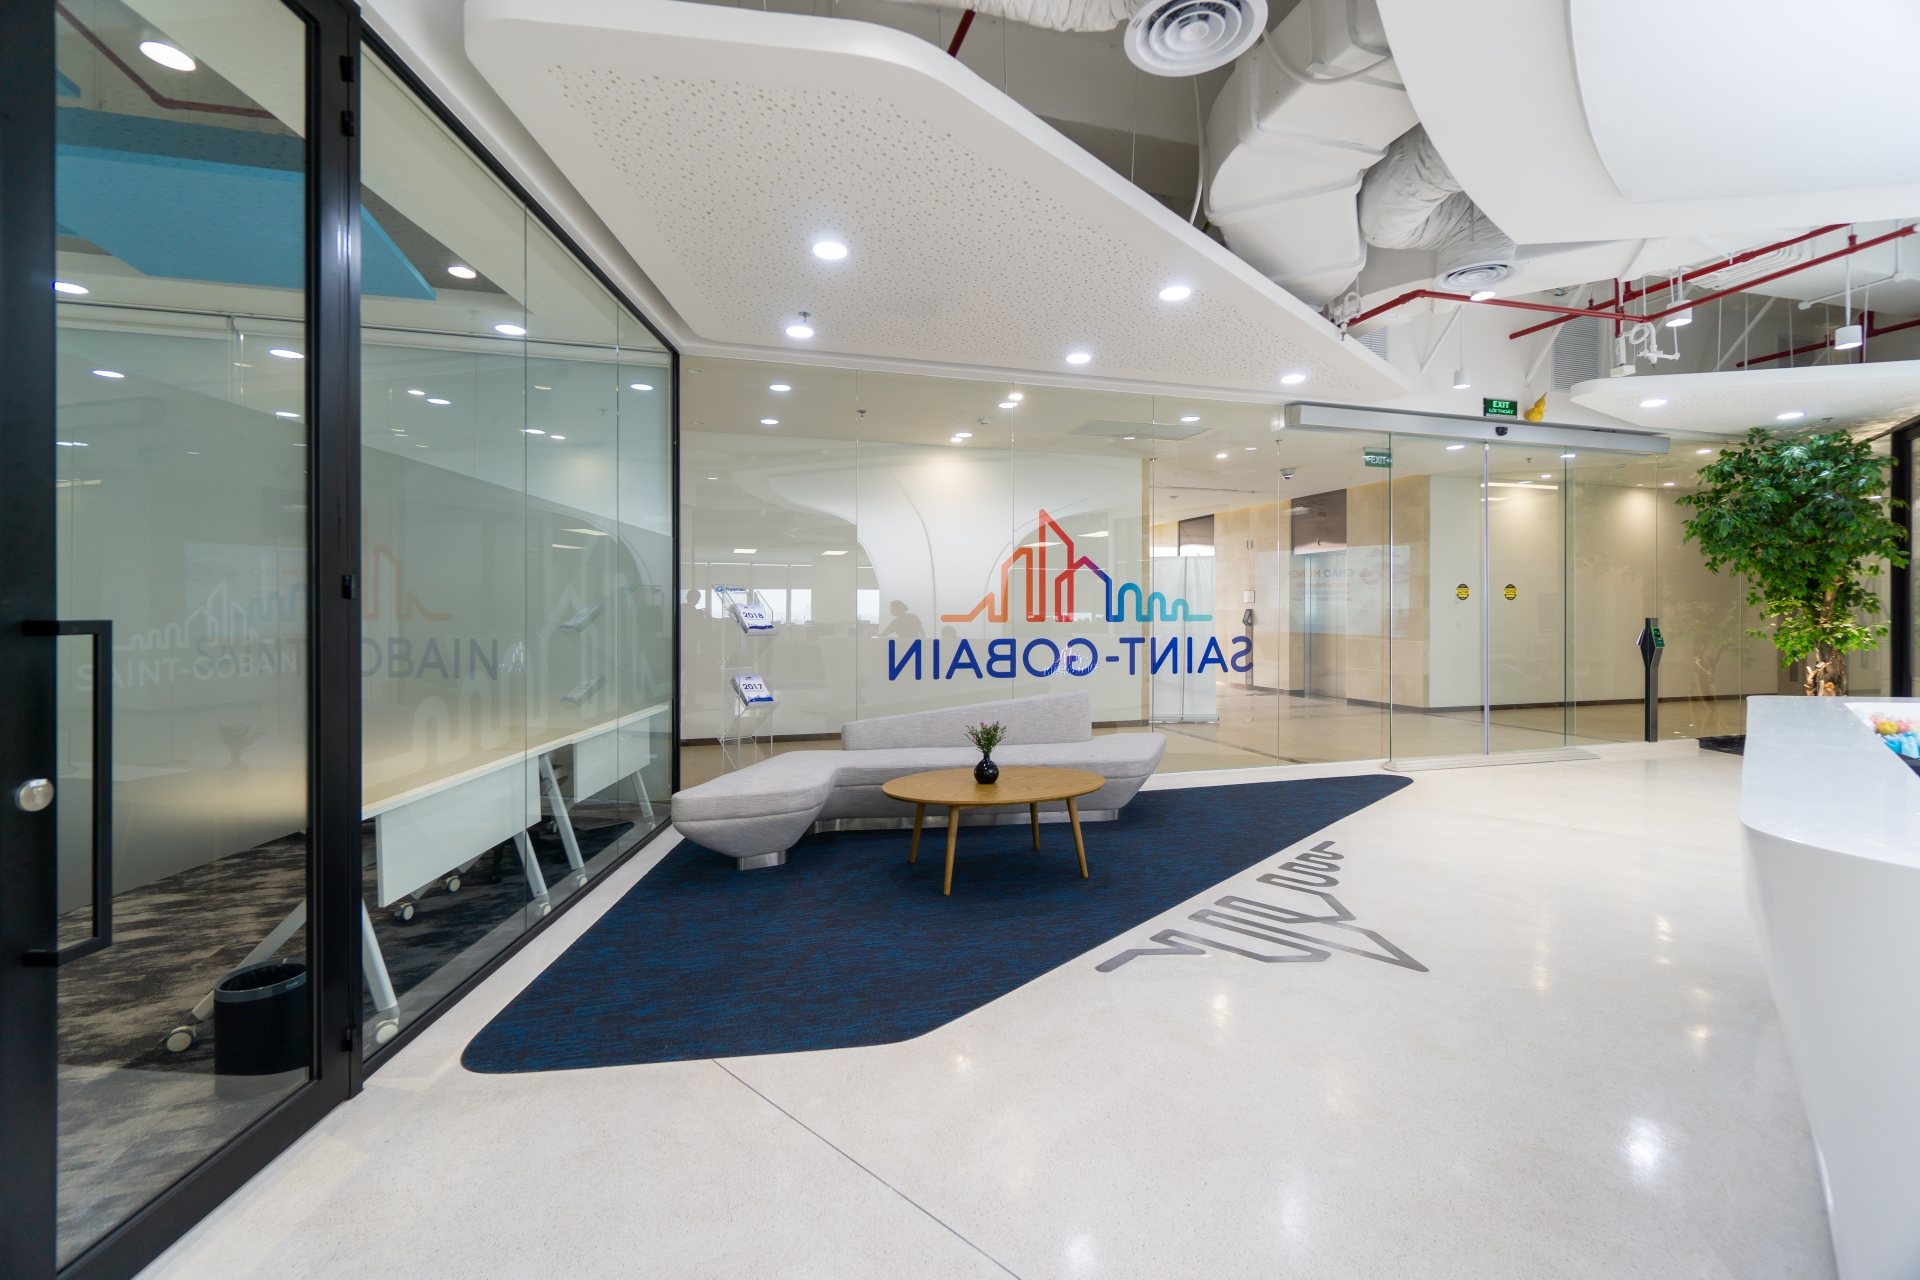 Saint-Gobain designs offices to improve productivity by 20 per cent